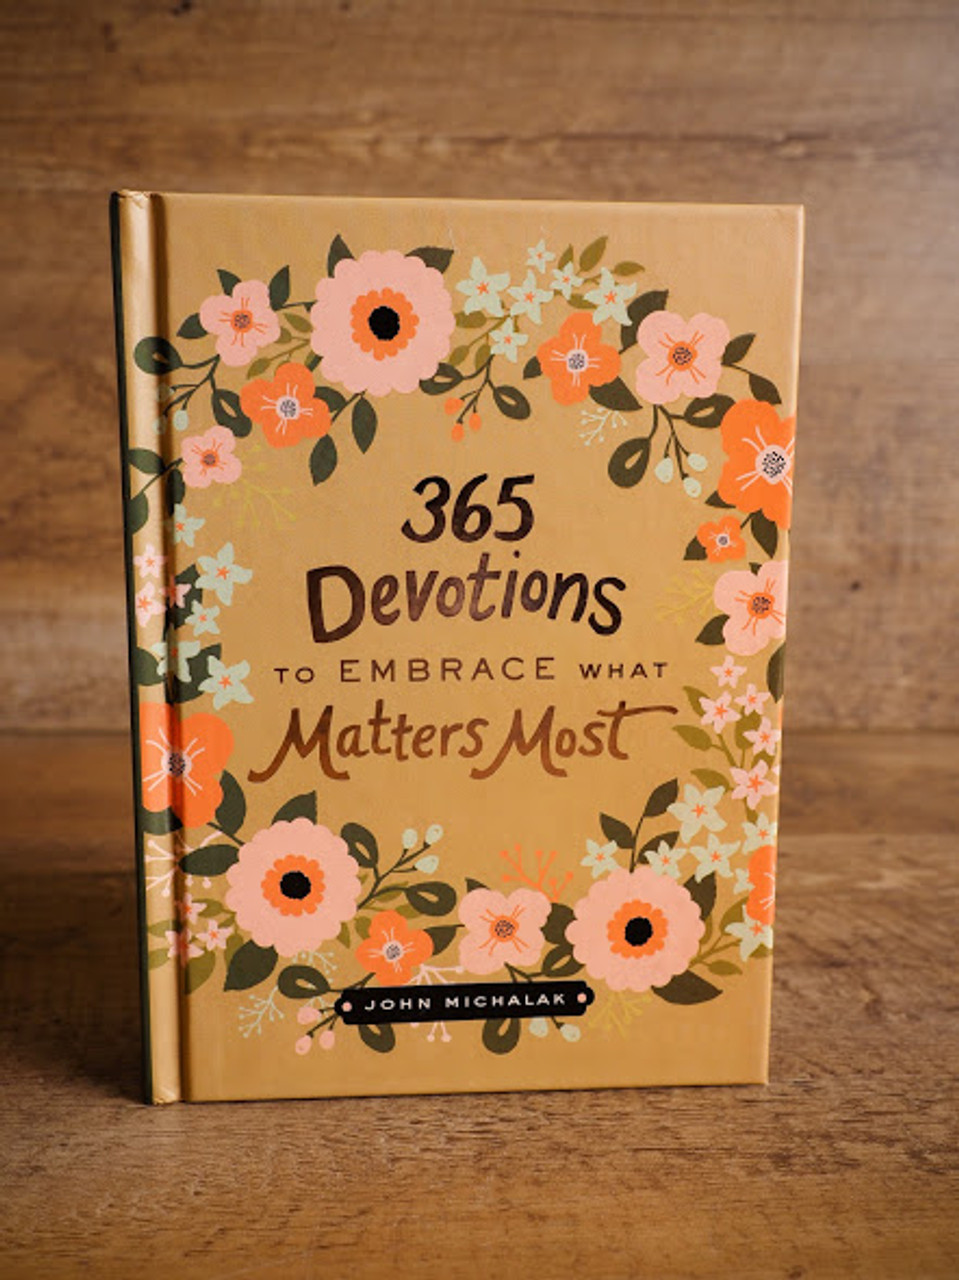 inspirational devotional book